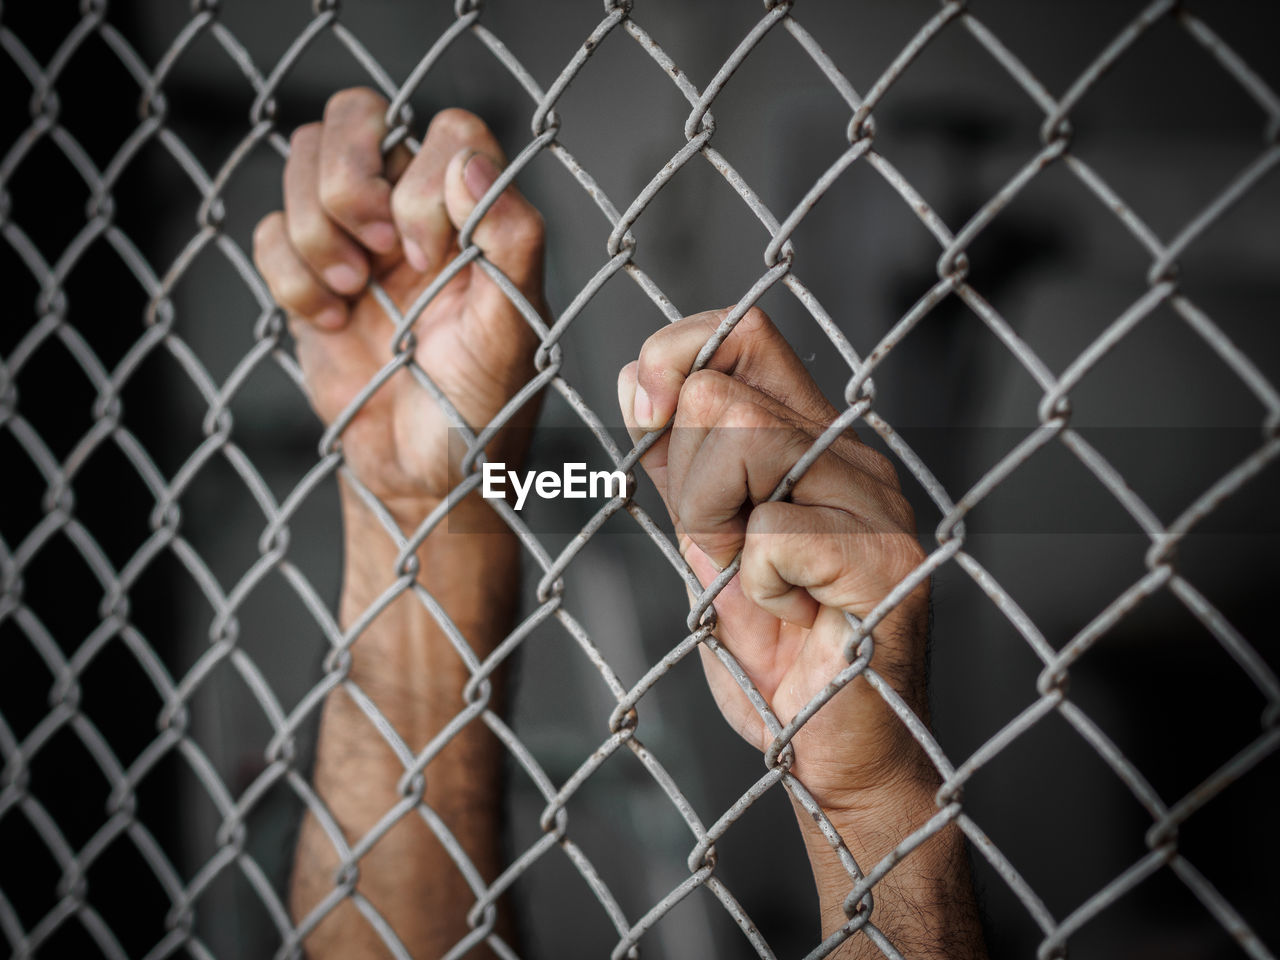 Cropped hands of person holding chainlink fence